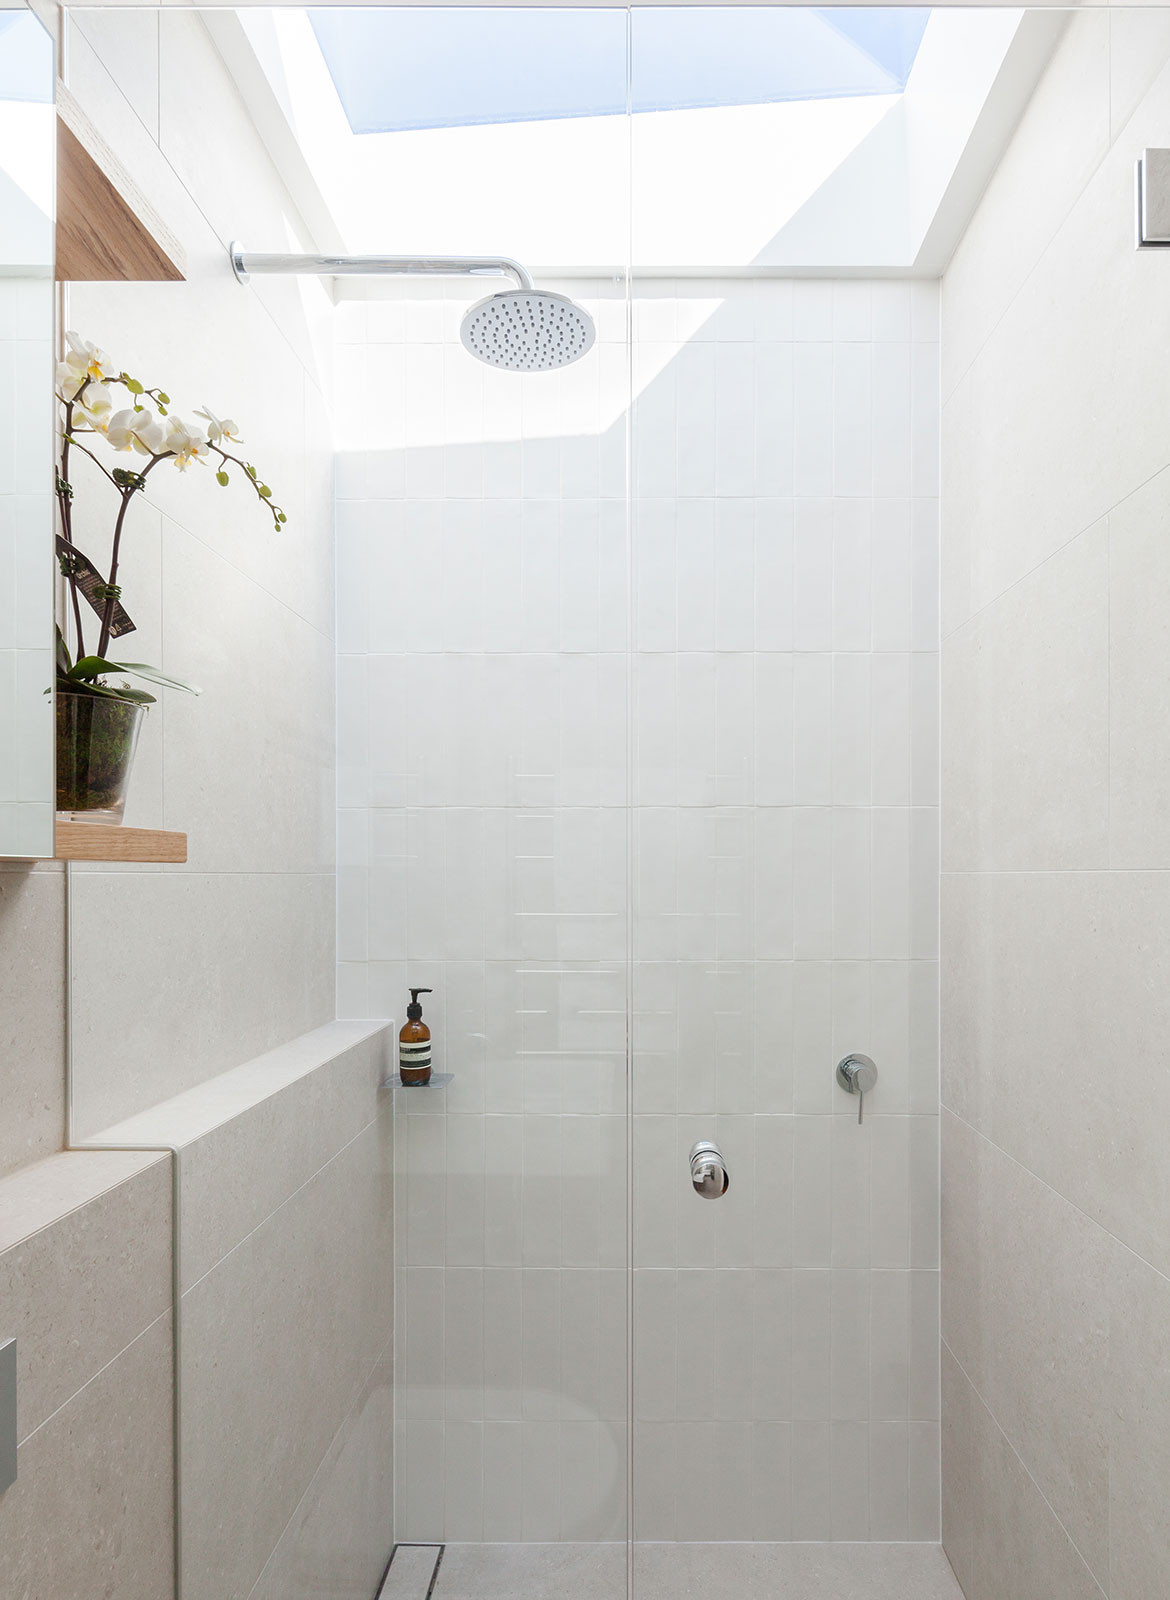 Surry Hills House Michael Cumming Architect CC Katherine Lu skylight shower